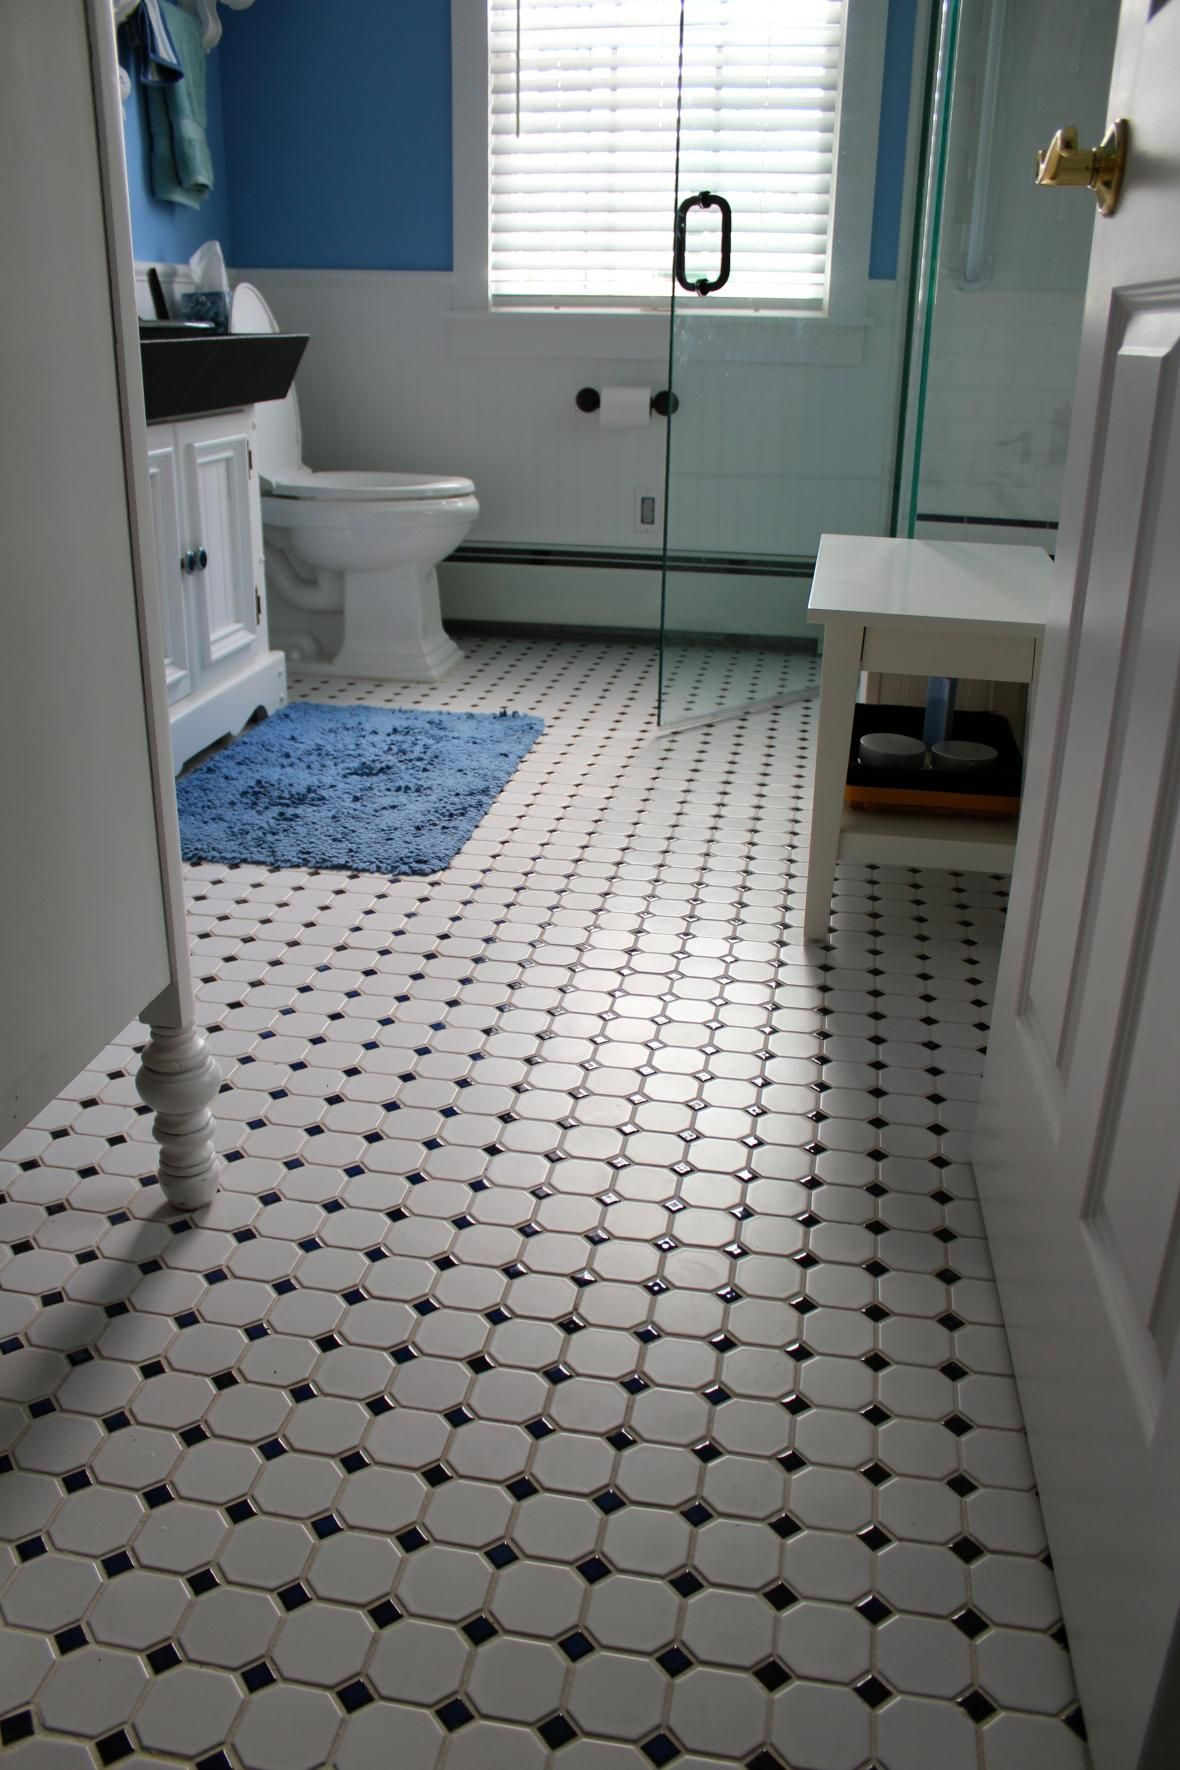 Classic Tile Vintage Bathroom Tile Vintage Bathroom Floor Black And White Tiles Bathroom